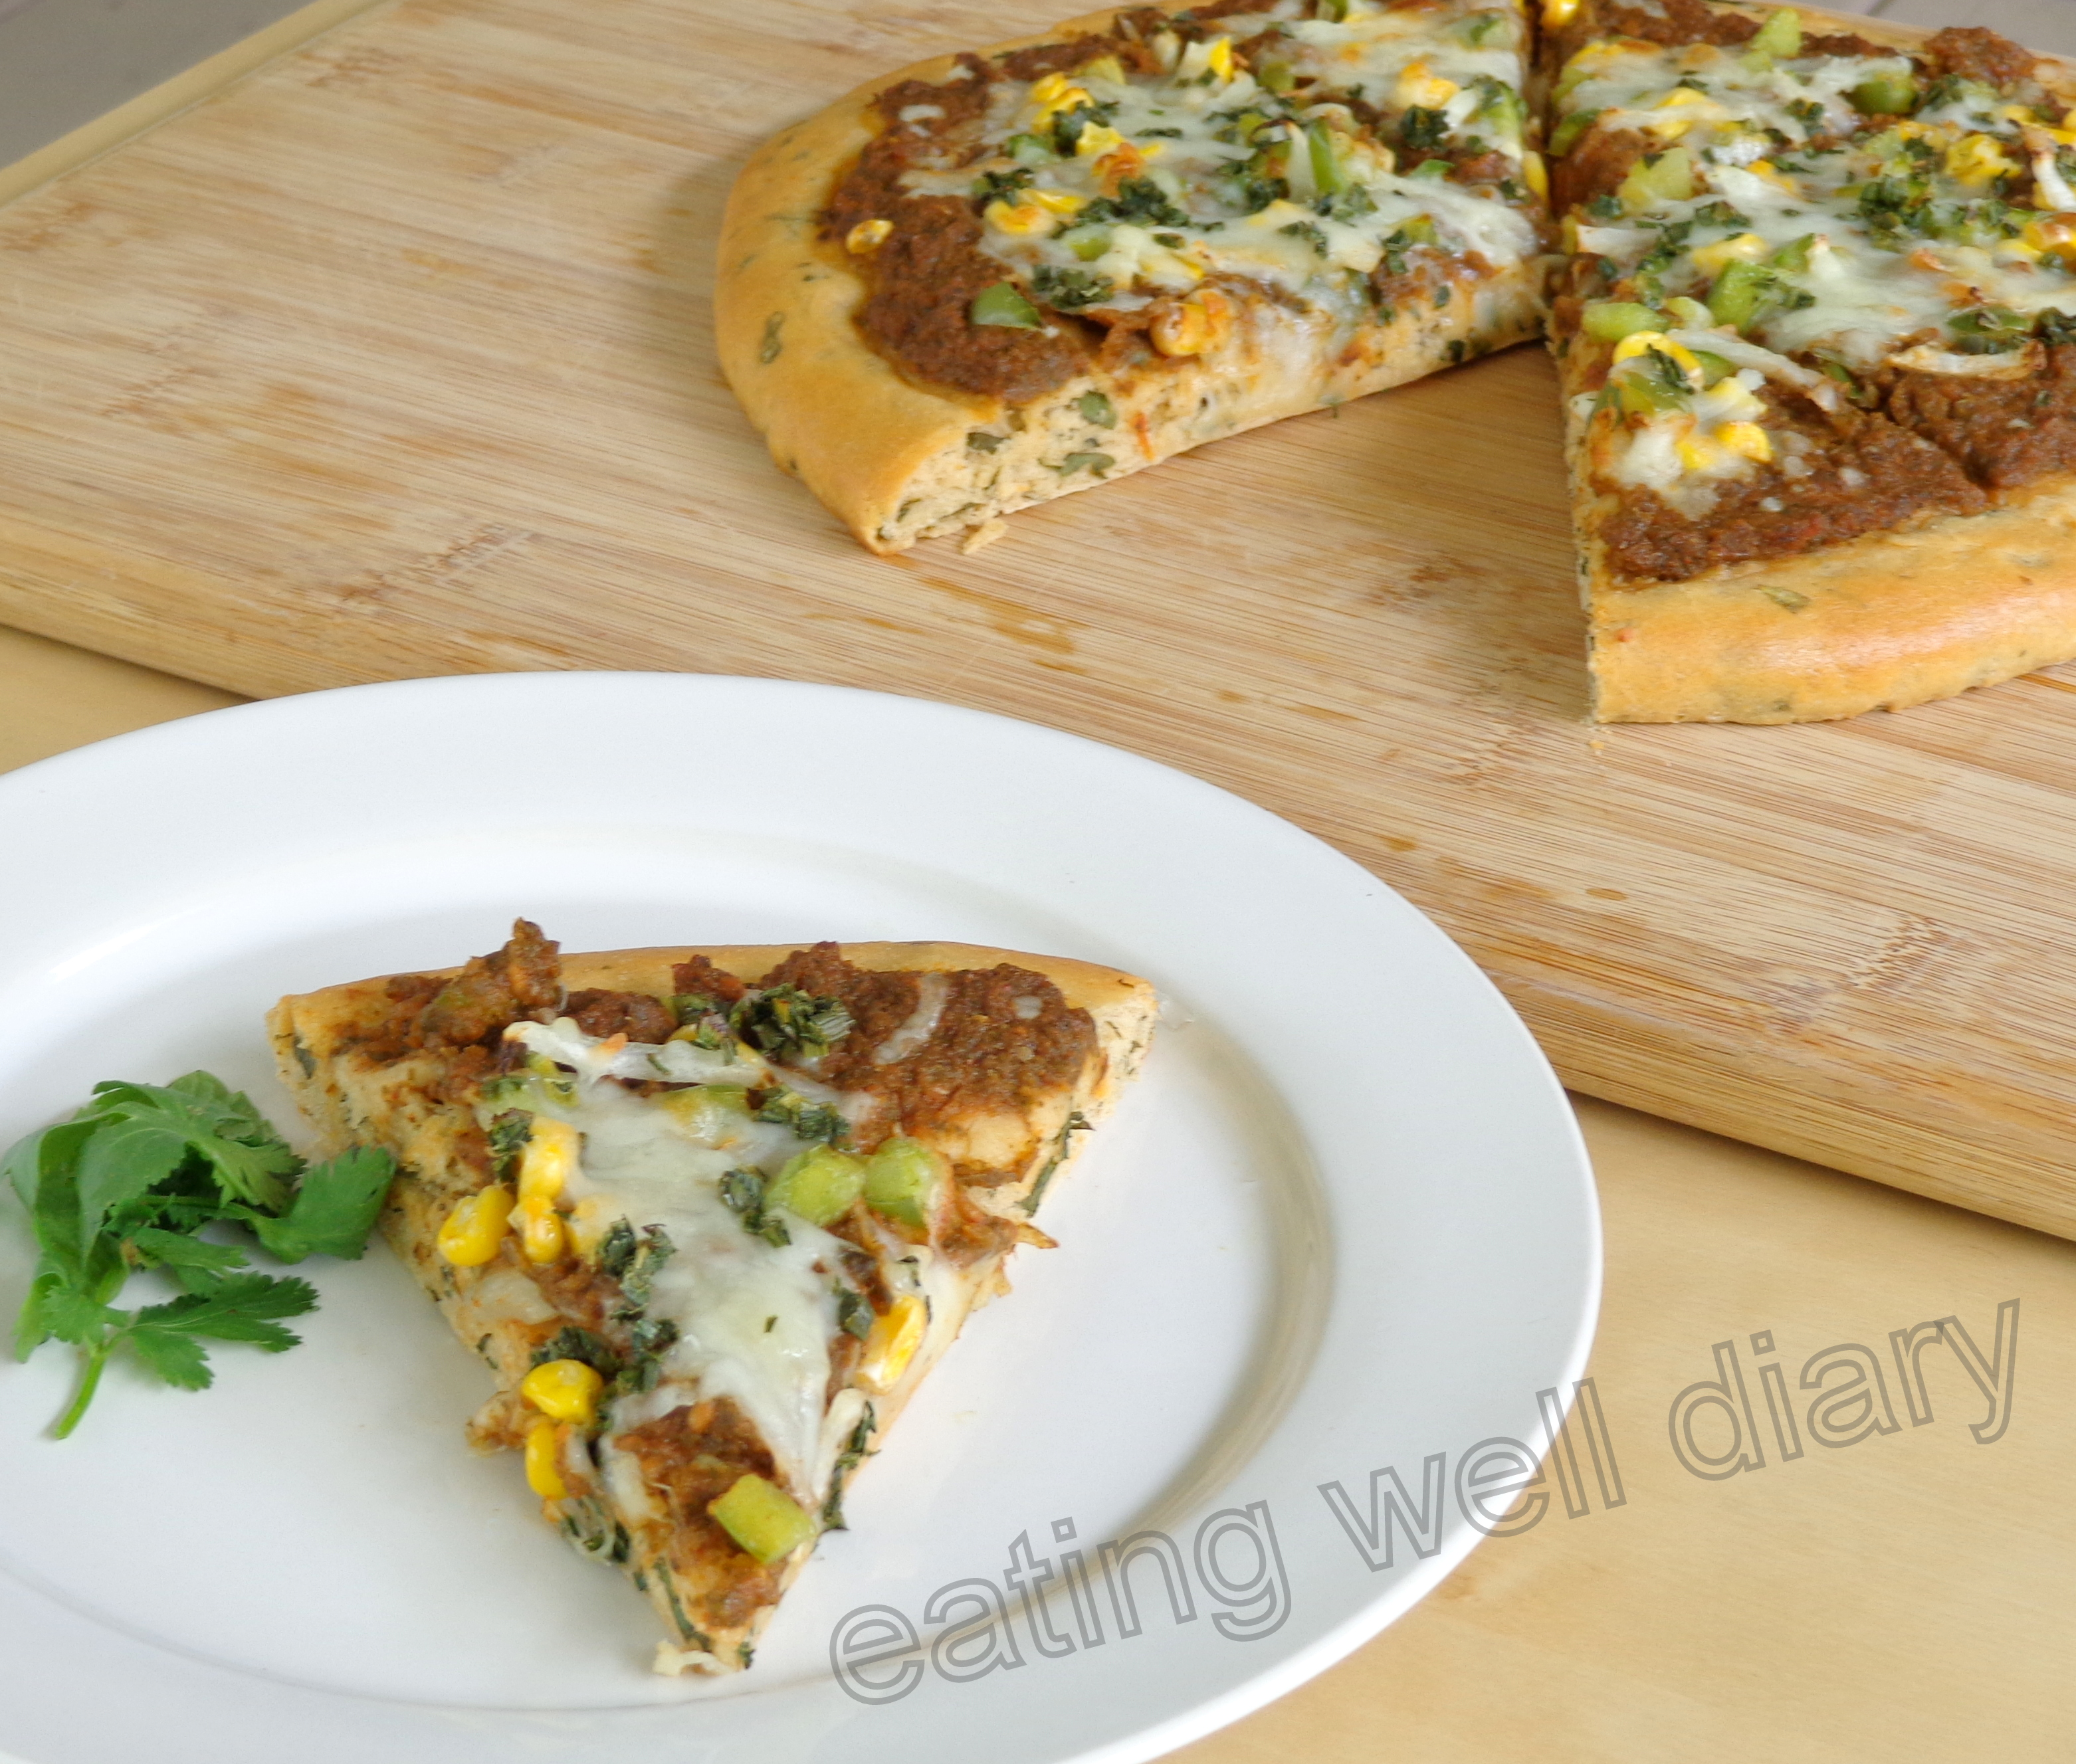 Herb-loaded pizza with homemade sauce (whole wheat)- Fiesta Friday Challenge 1